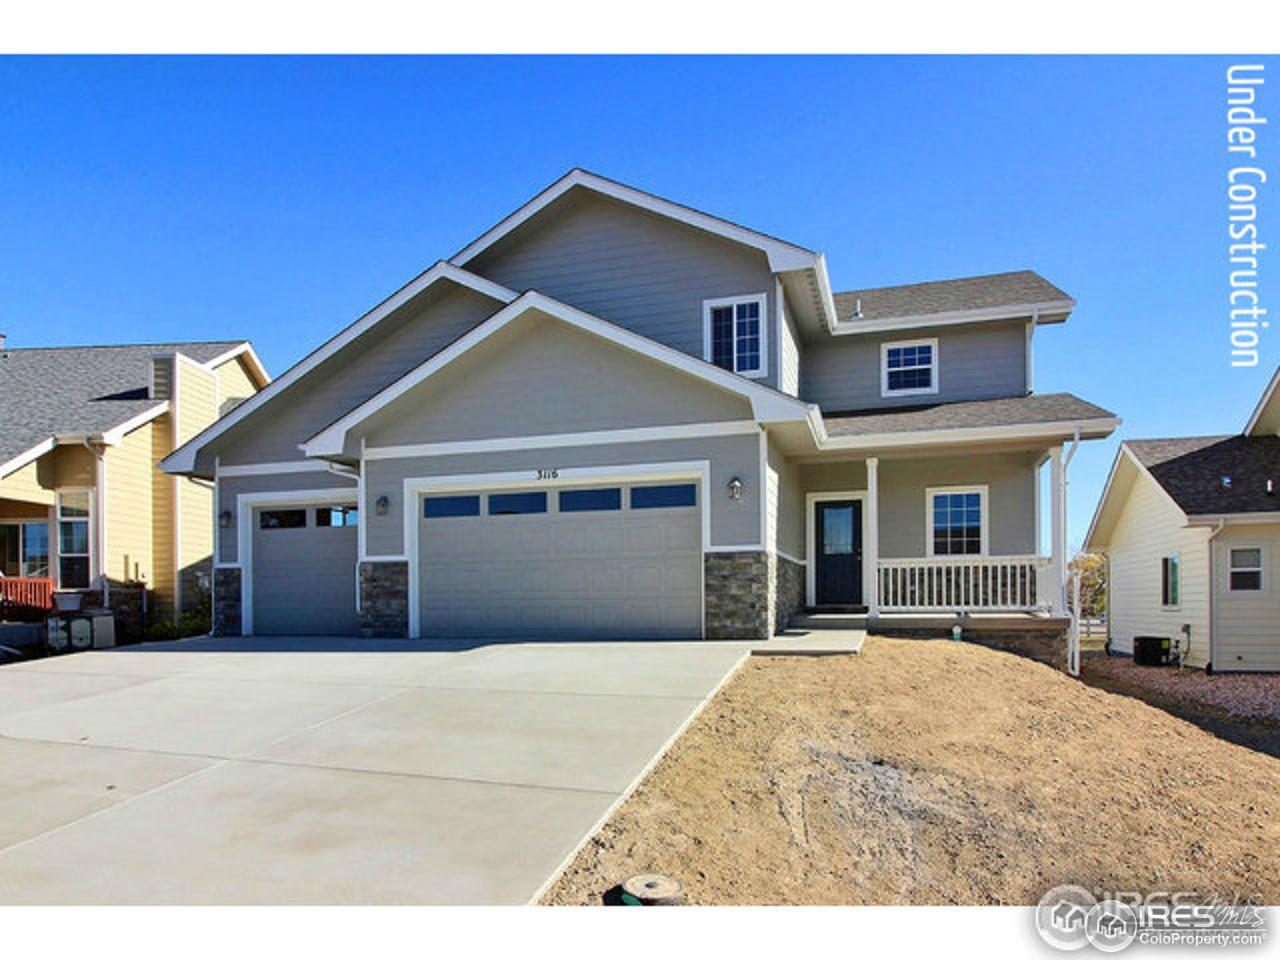 5808 Pinot St, Greeley, CO 80634